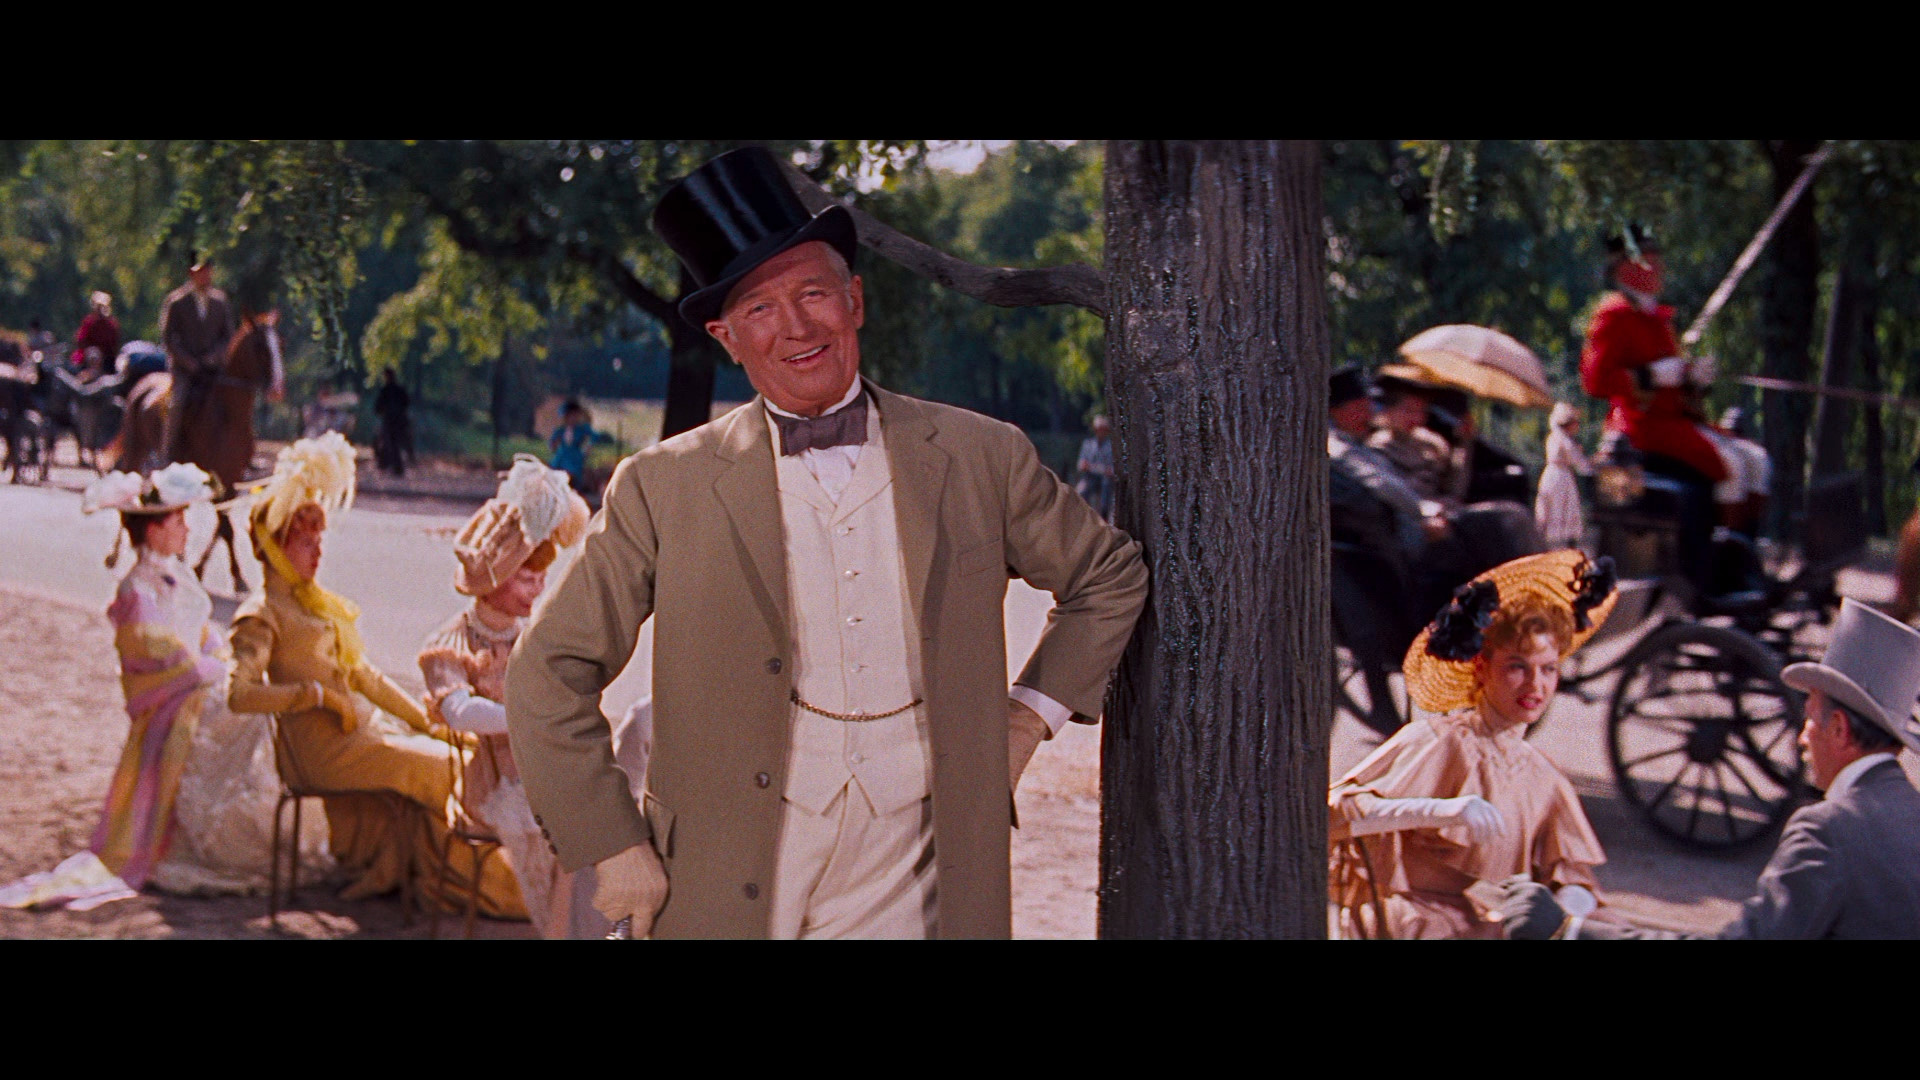 Gigi - 1958  I love Maurice Chevalier! You could make a VERY compelling argument that he's everything I will never be.